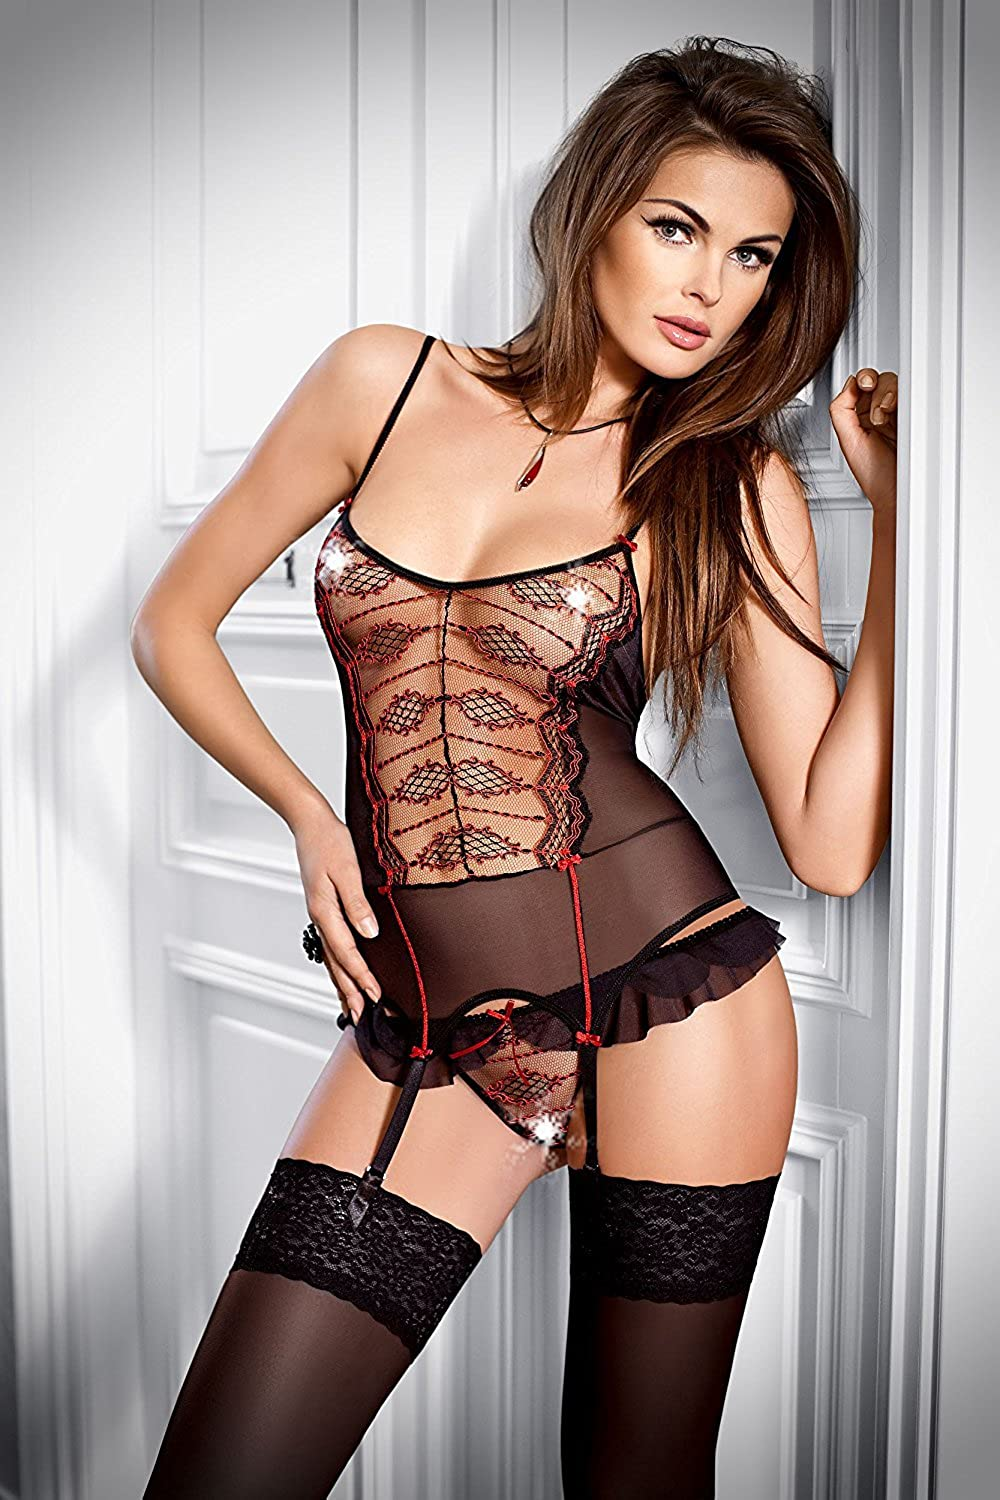 Mature lingerie and milf porn pictures